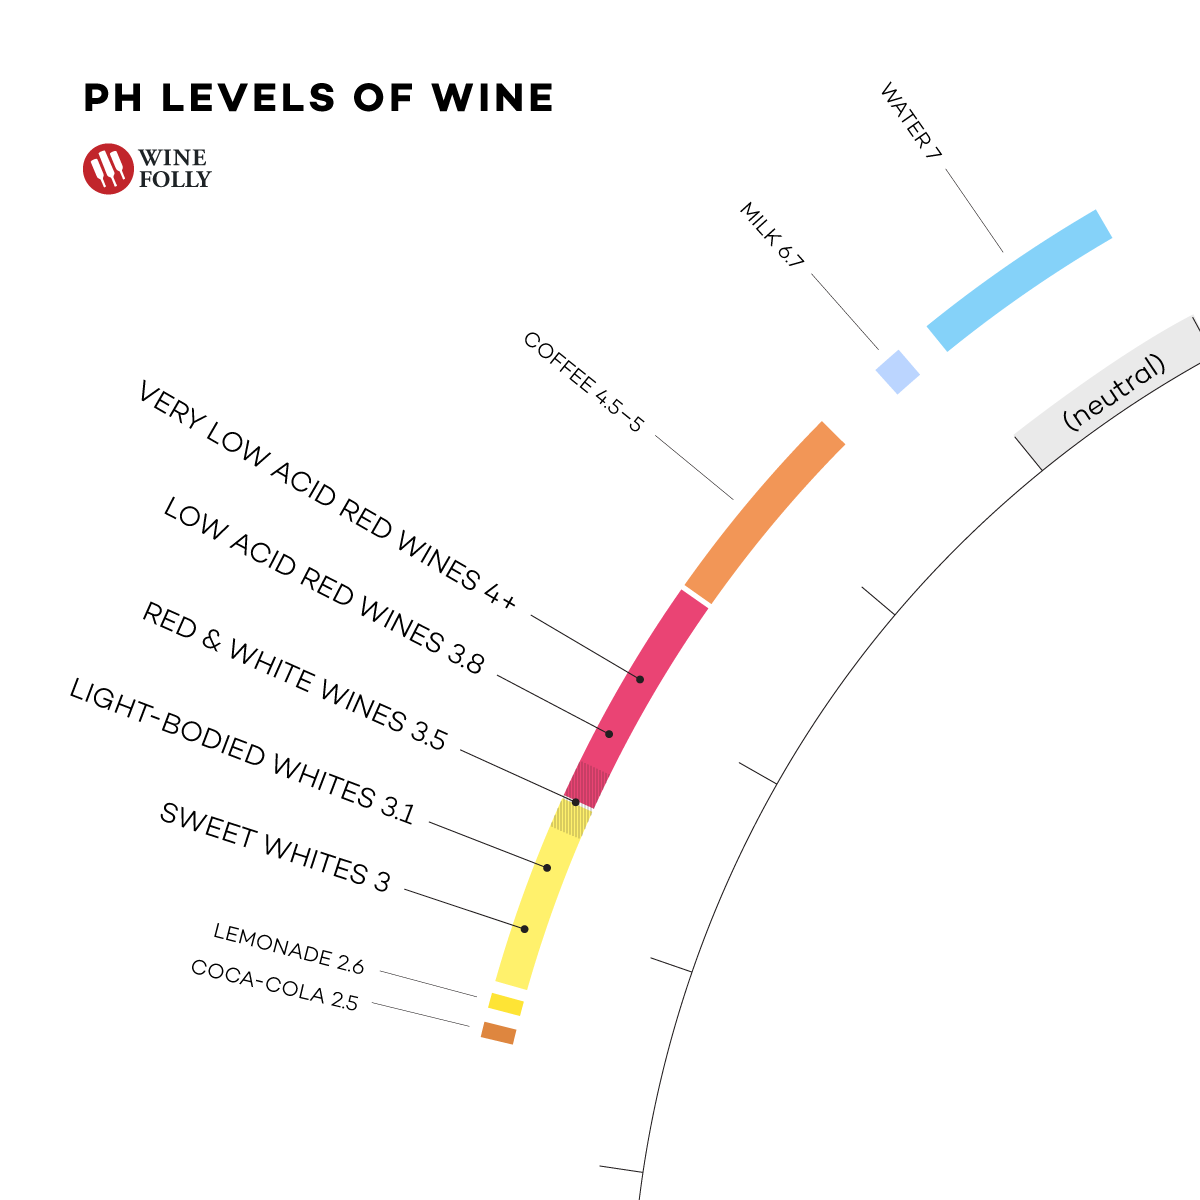 acidity-ph-level-in-wine-and-drinks